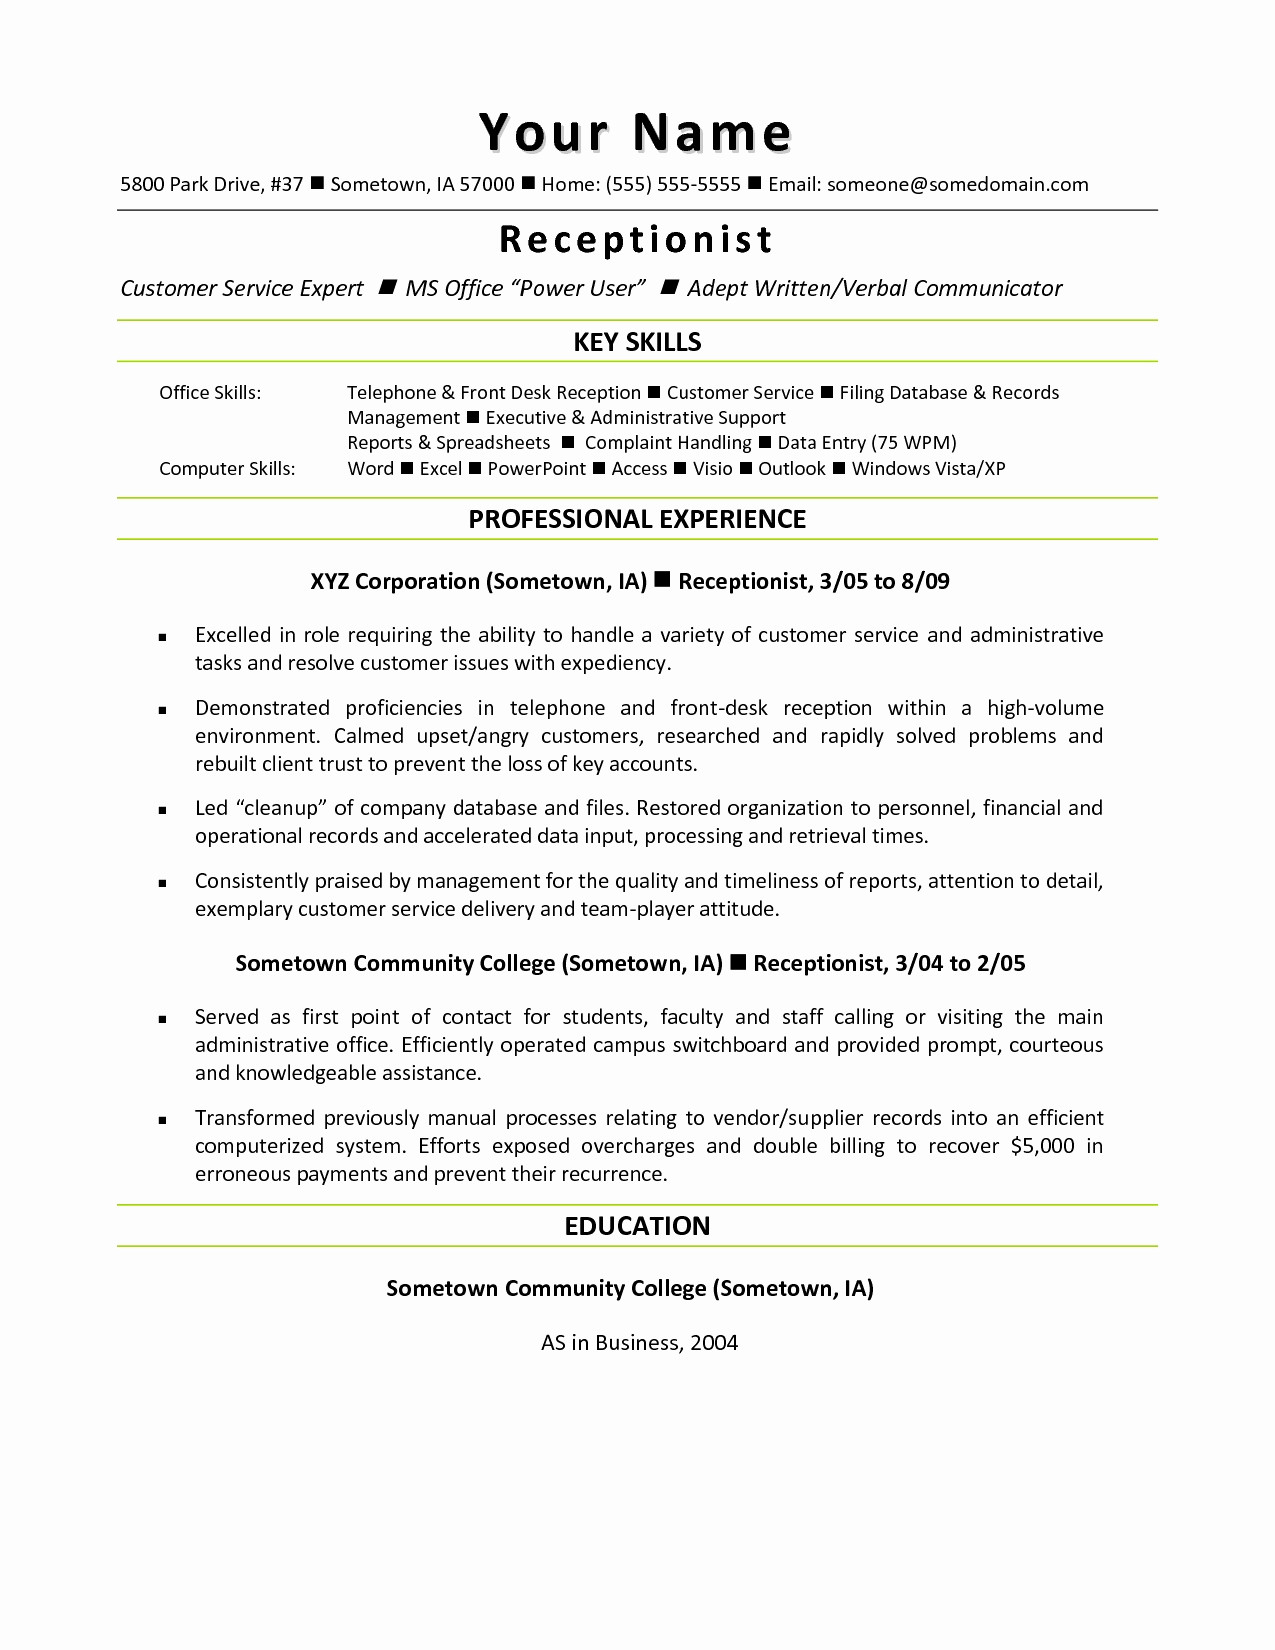 Cover Letter Template for Management Position - Cover Letter Template for Manager Position 23 Sample Puter Skills